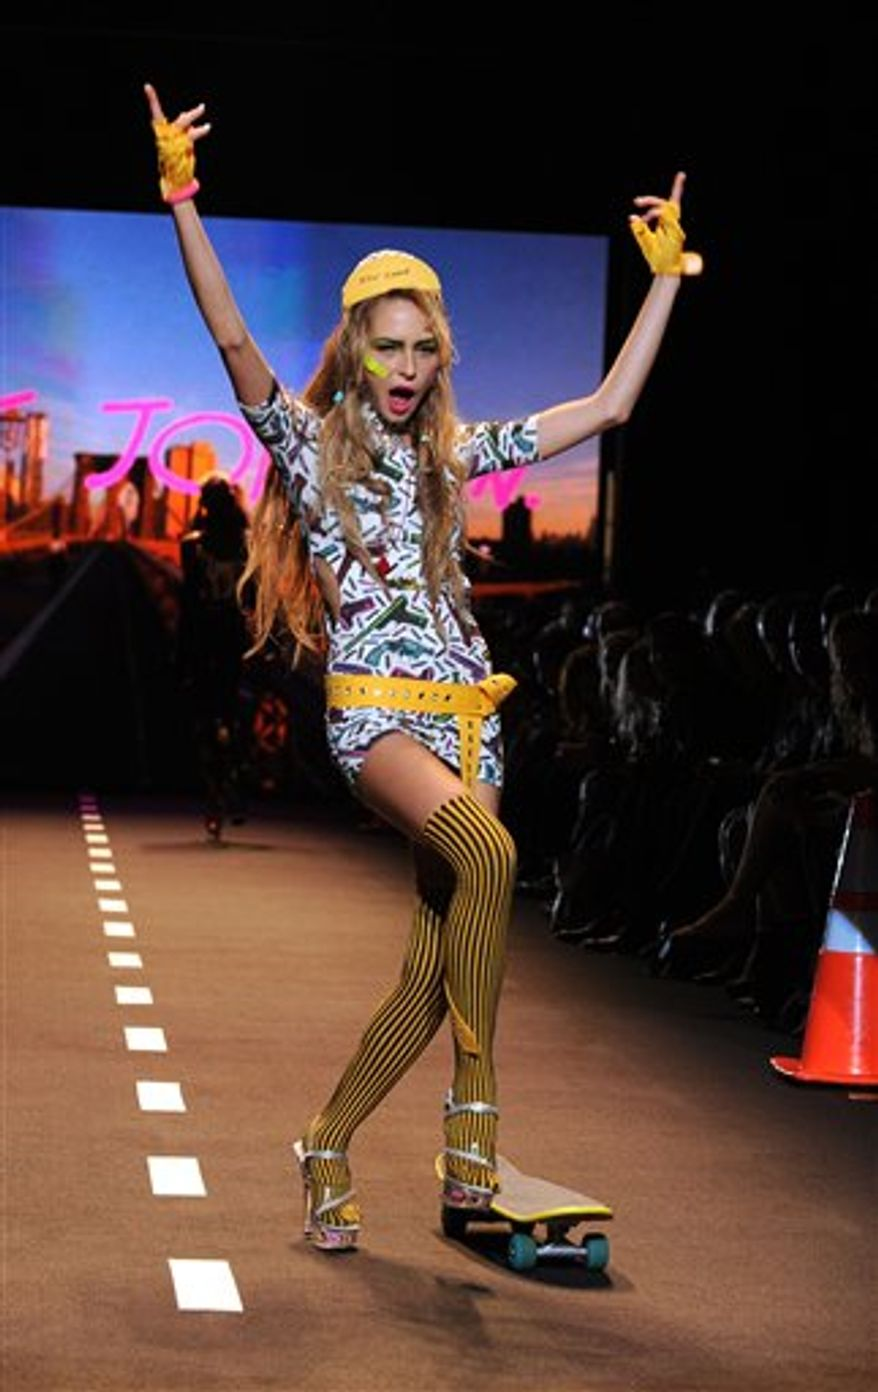 The Betsey Johnson spring 2011 collection is shown during Fashion Week in New York, Monday, Sept. 13, 2010. (AP Photo/Diane Bondareff)